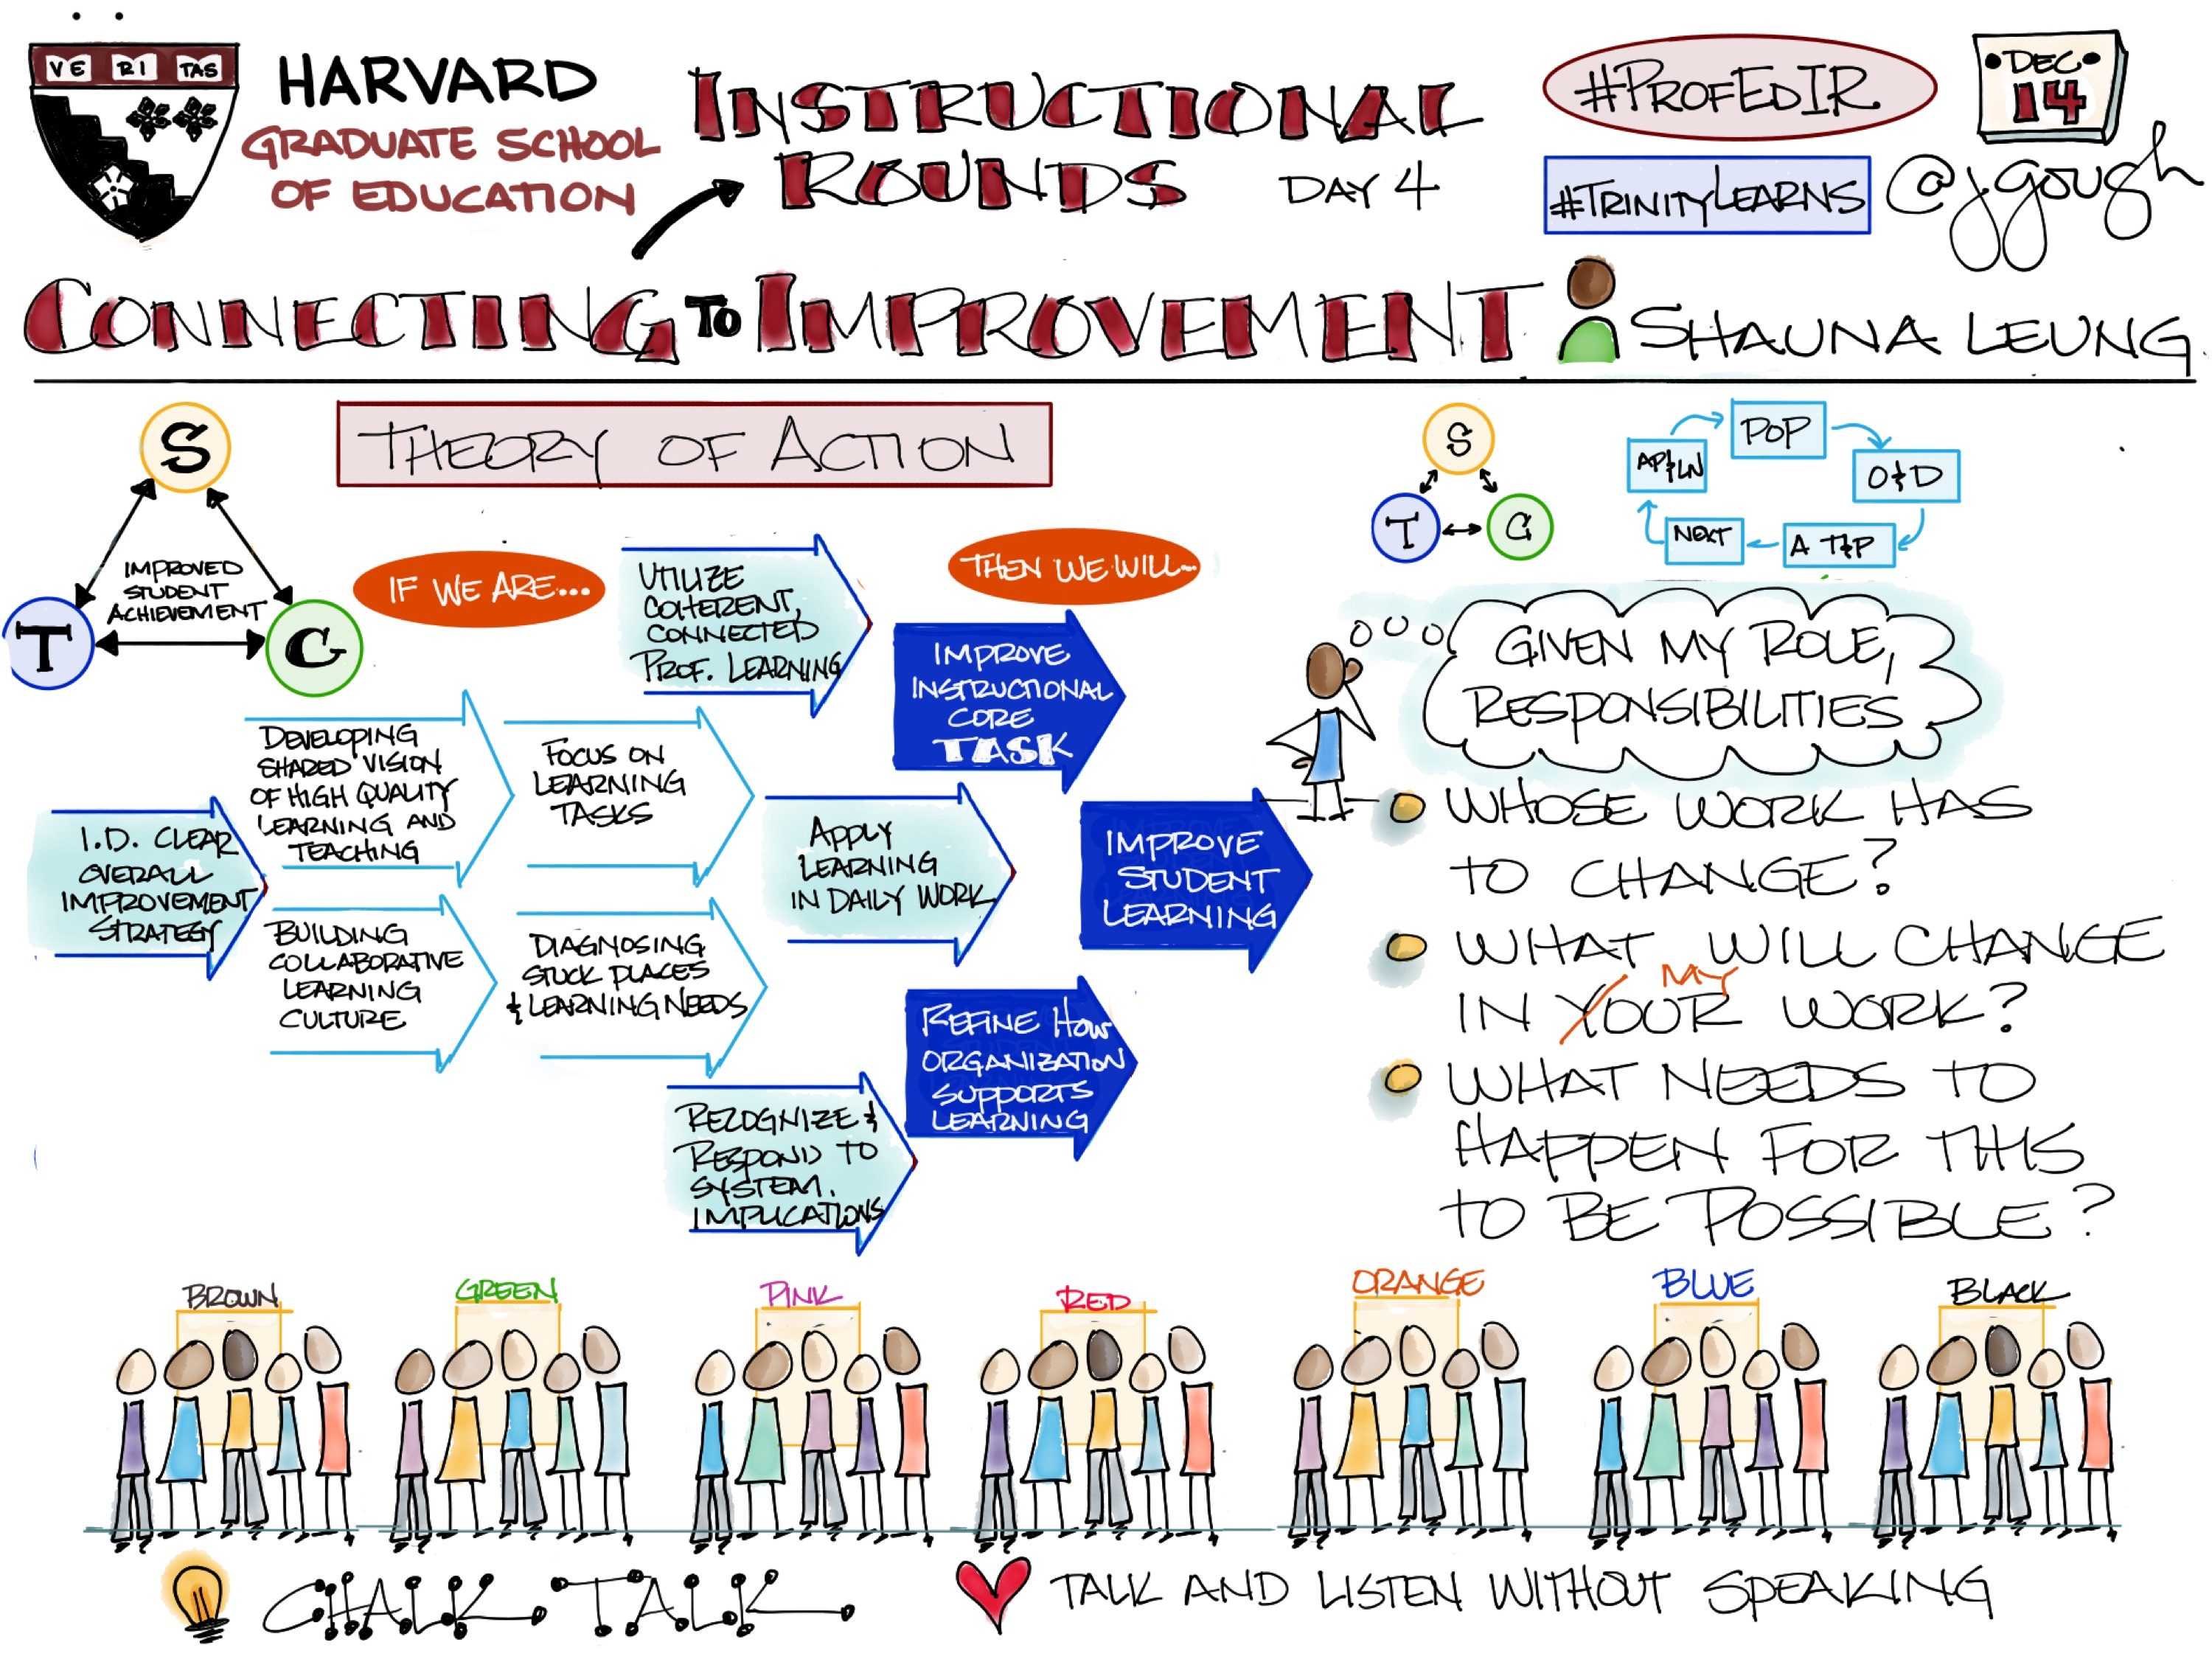 Sharing my #Sketchnotes from #ProfEdIR @HGSE Connecting Instructional Rounds to Improvement (Day 5) with Shauna Leung – #TrinityLearns